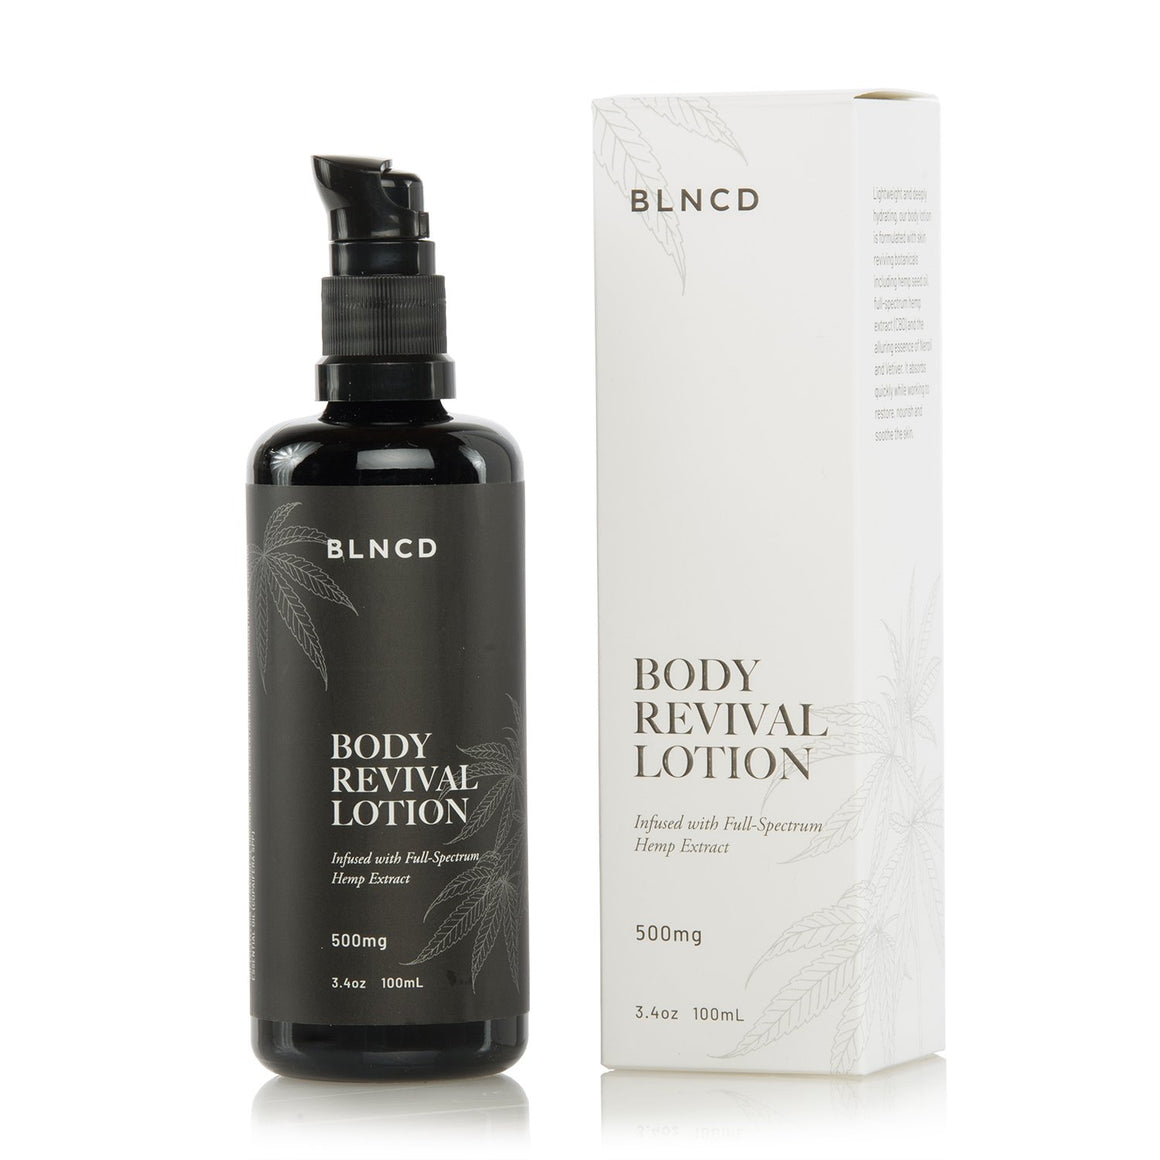 BLNCD Naturals CBD Body Revival Lotion at Modest Hemp Co.